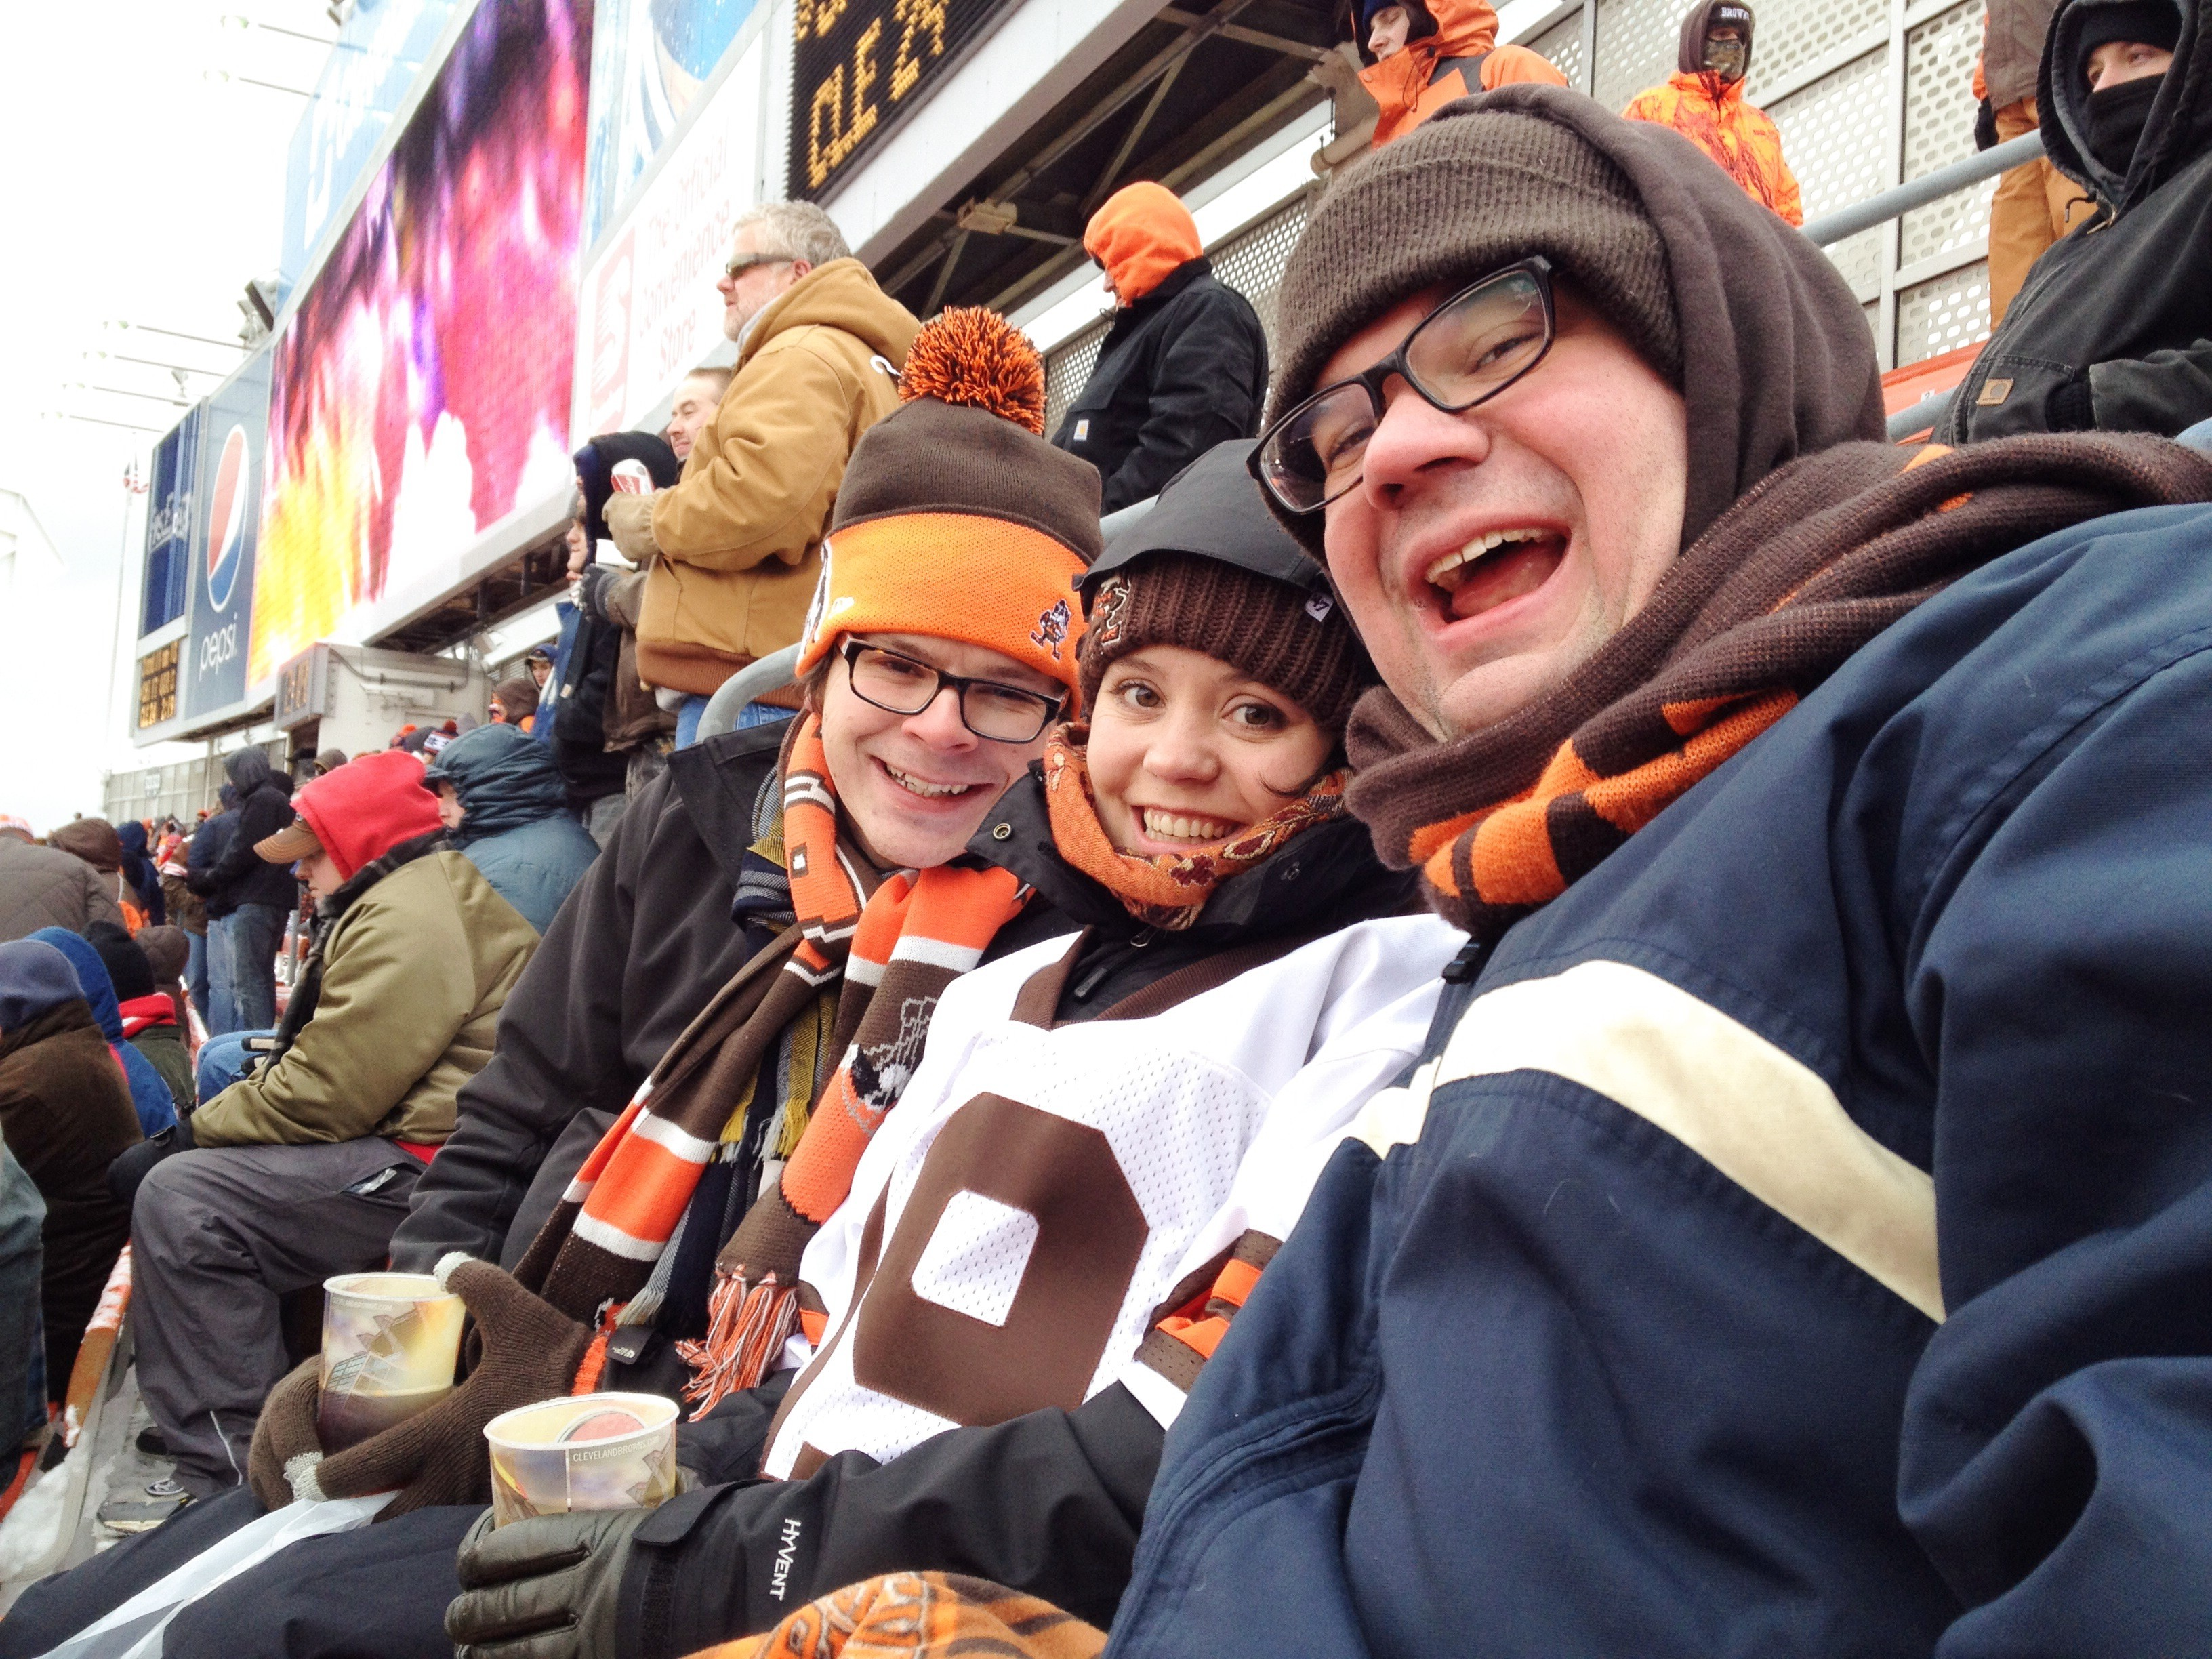 6b1p visits First Energy Stadium to watch the Browns lose in the cold. Sherri not pictured. Photo by Sherri.